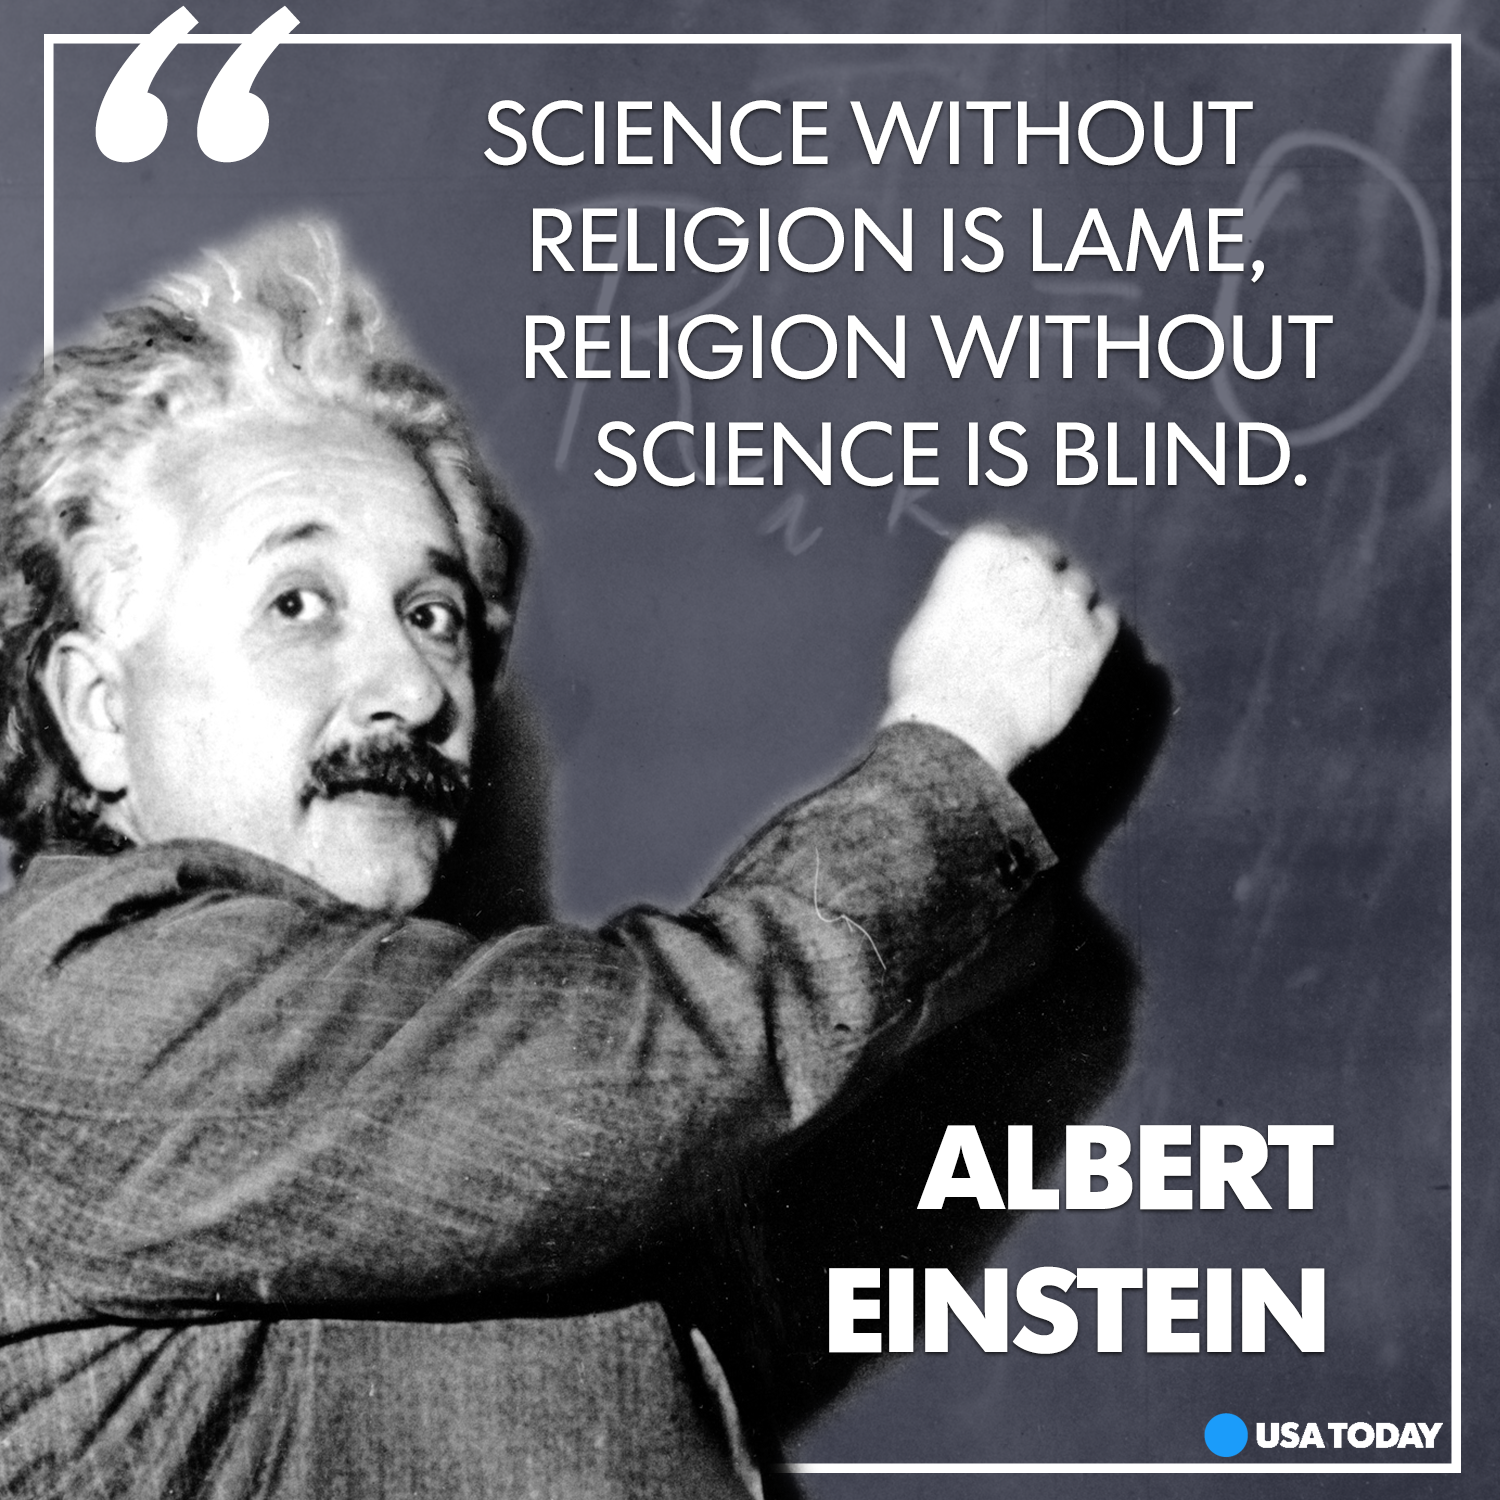 Albert Einstein: Words To Live By